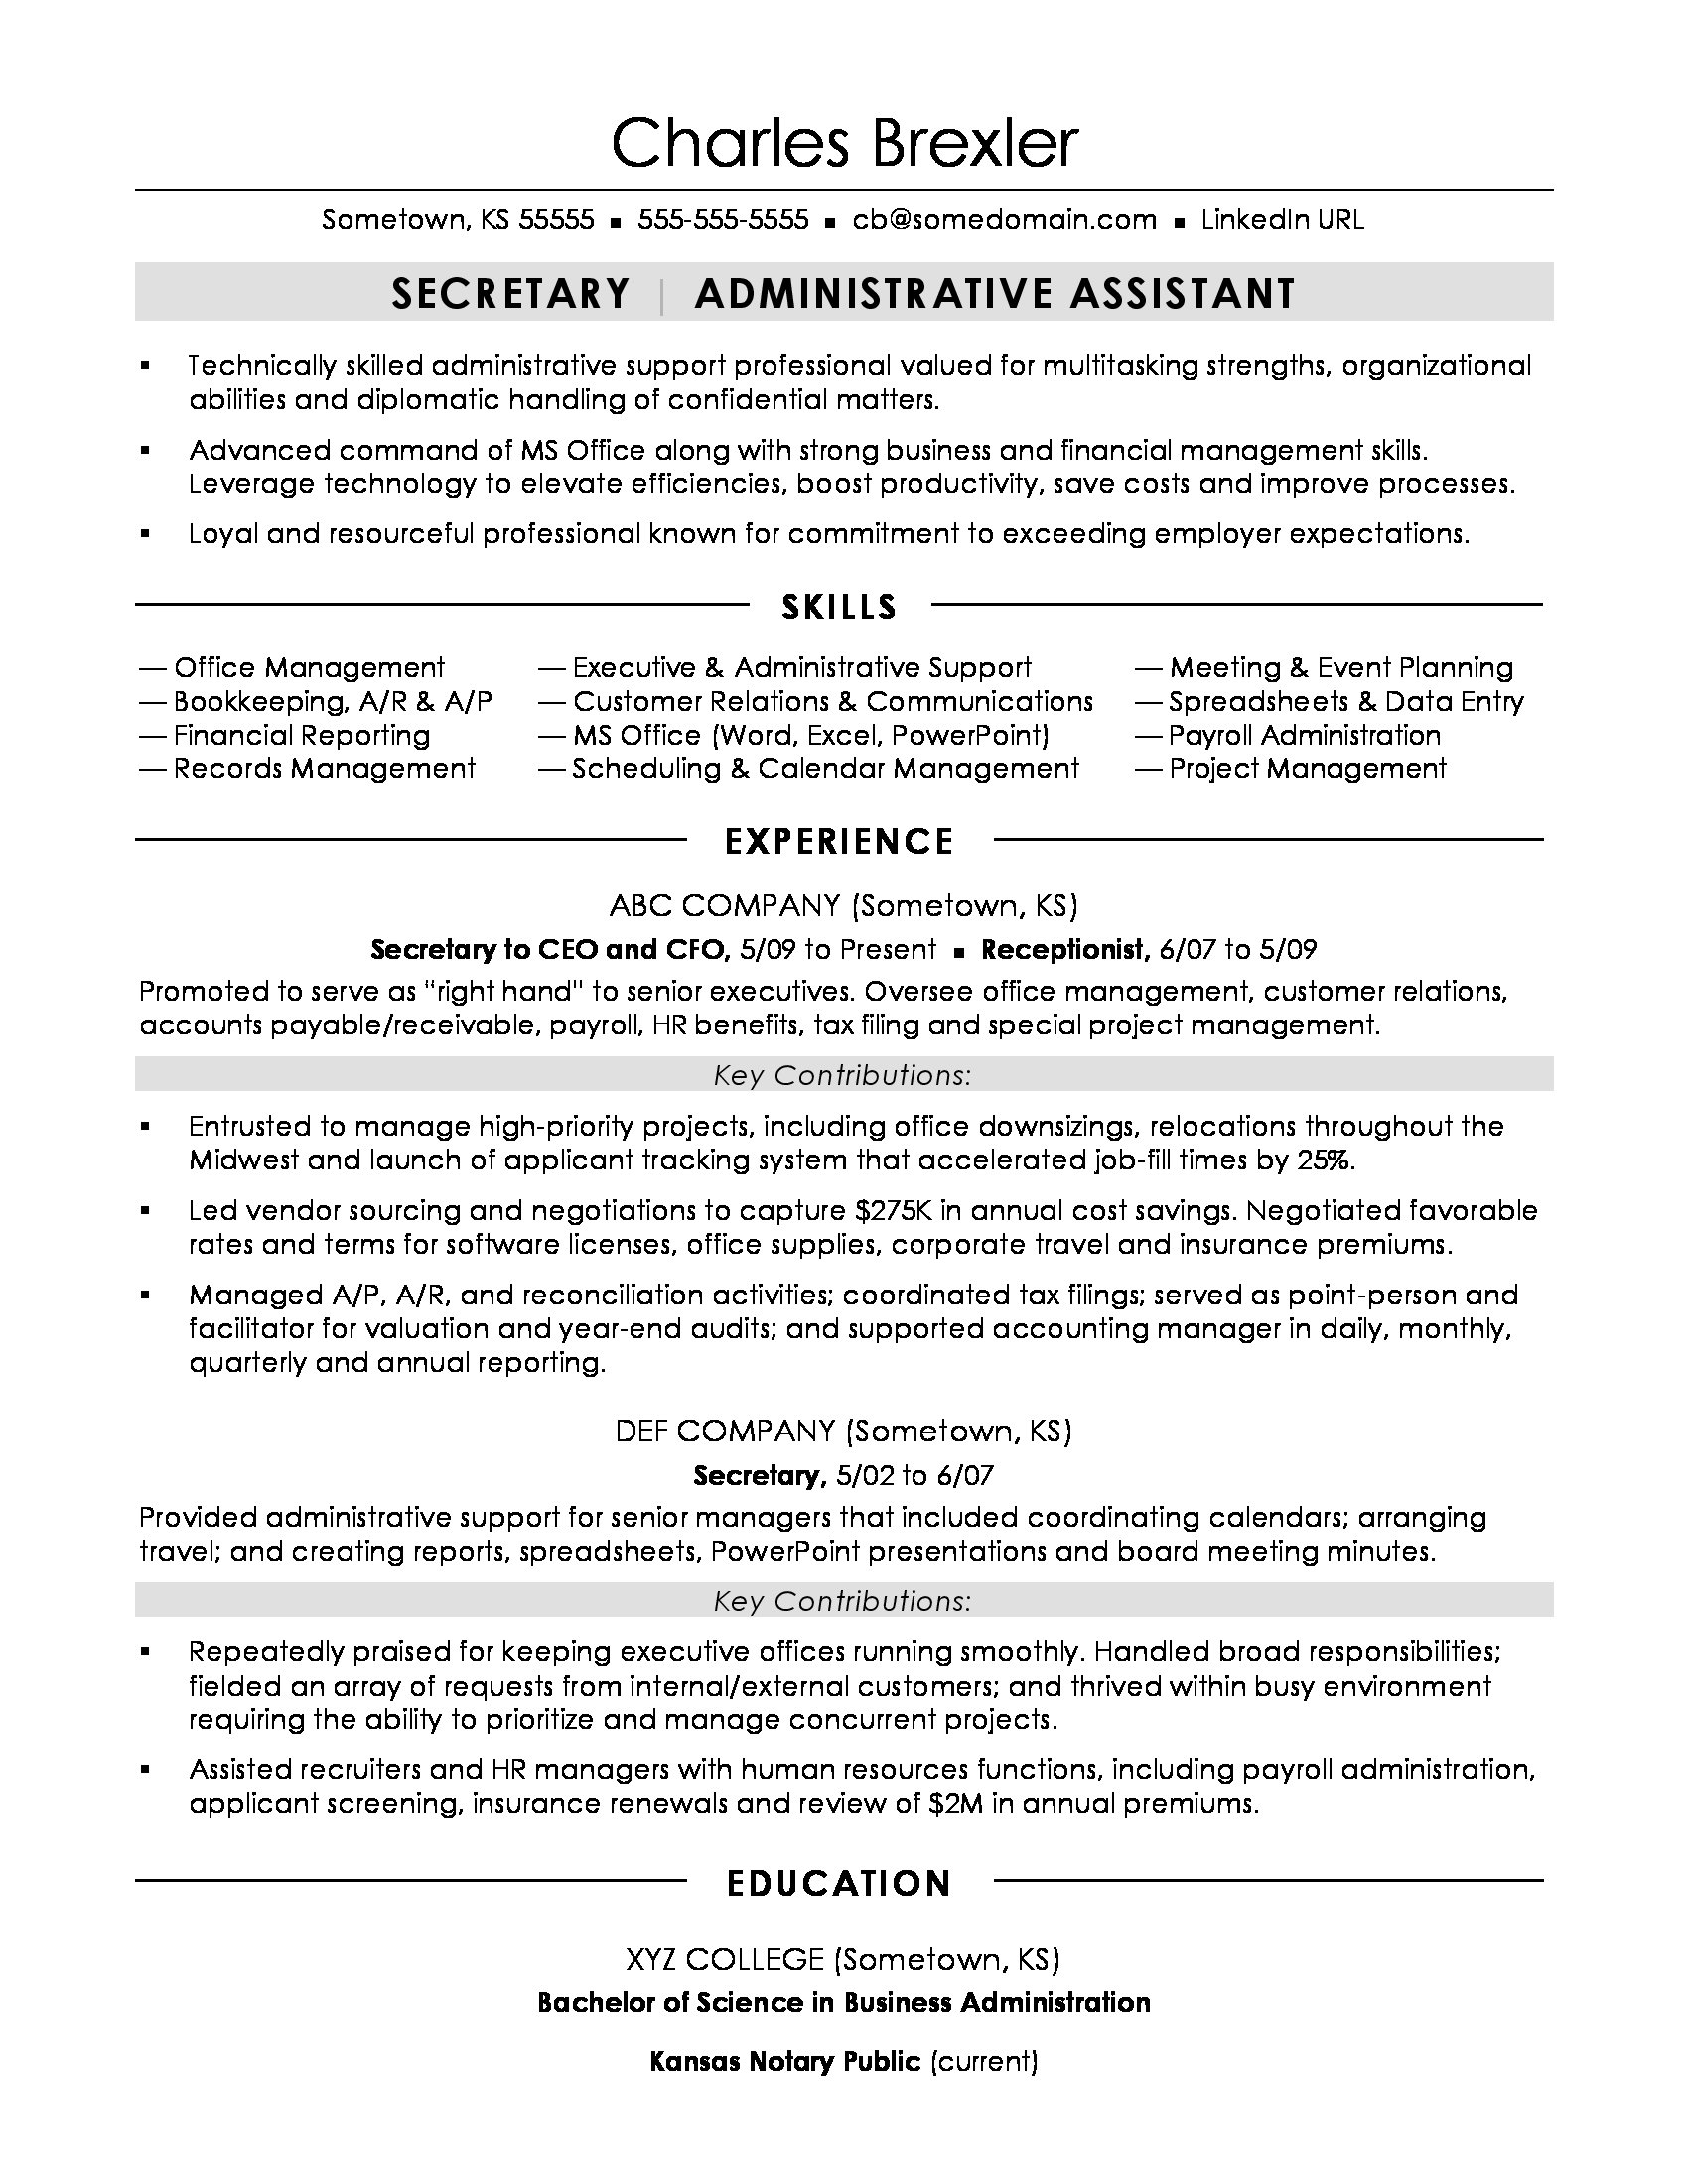 secretary resume sample - Skill Resume Samples